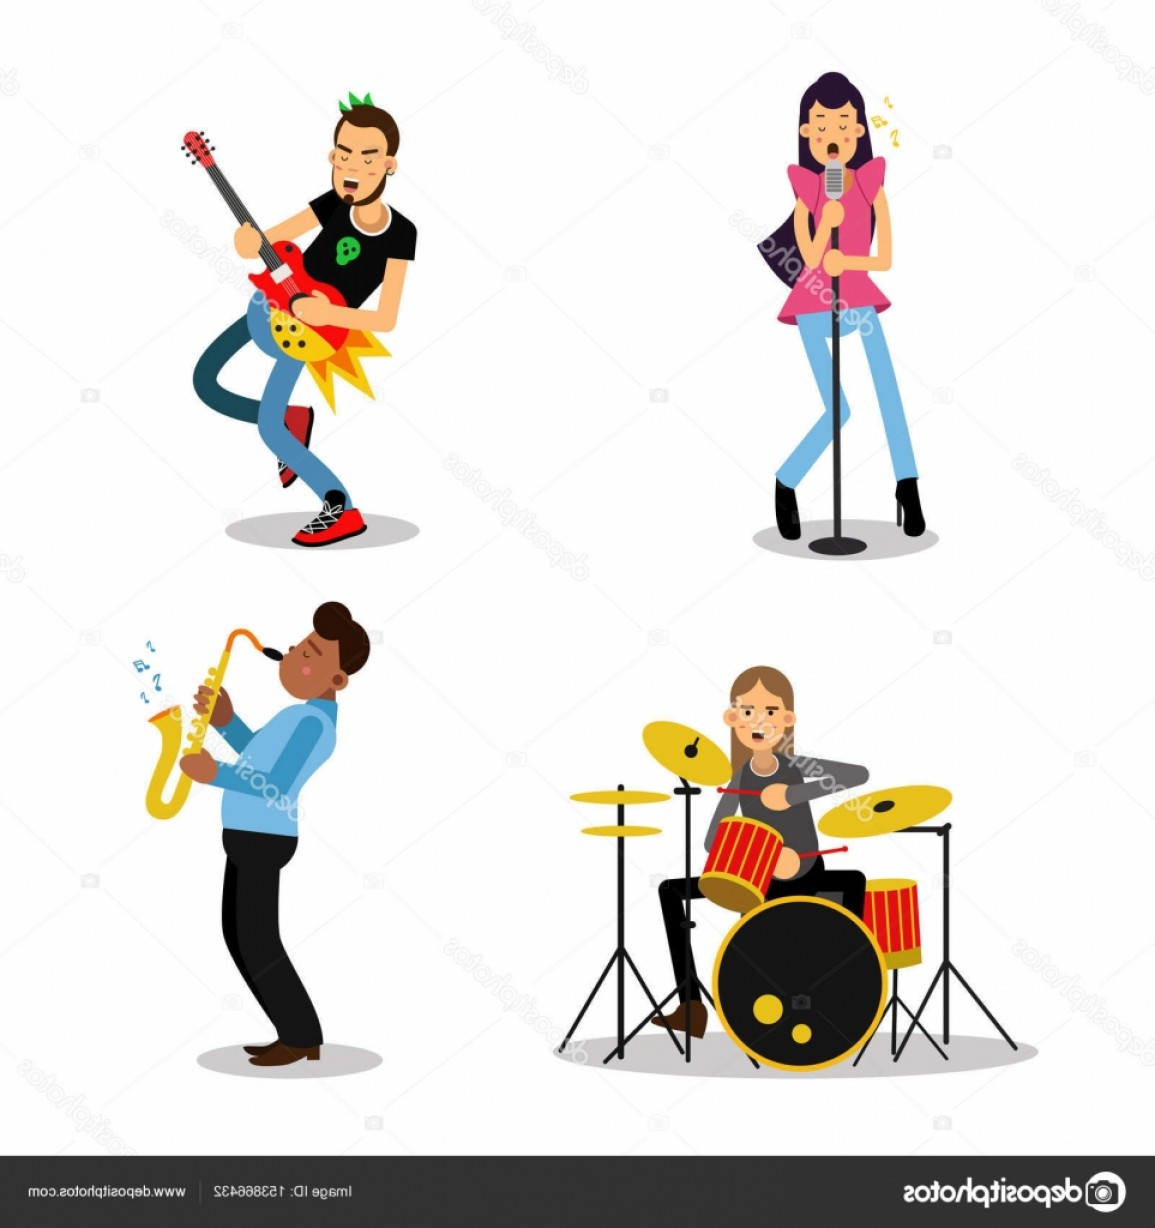 Musician Person Vector: Stock Illustration Musician Characters With Different Musical